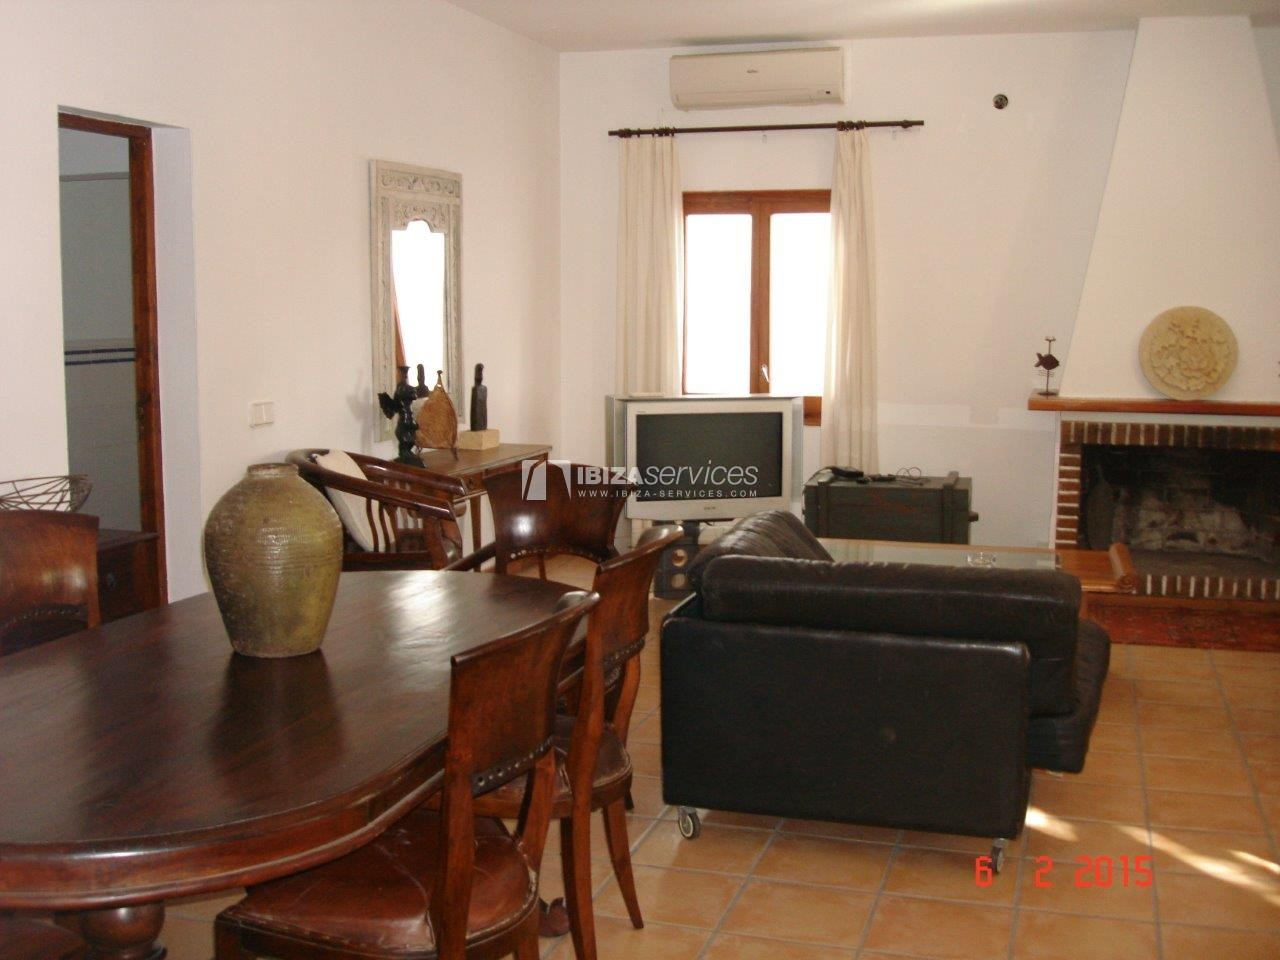 House for rent with tennis court in Sant Rafael perspectiva 4